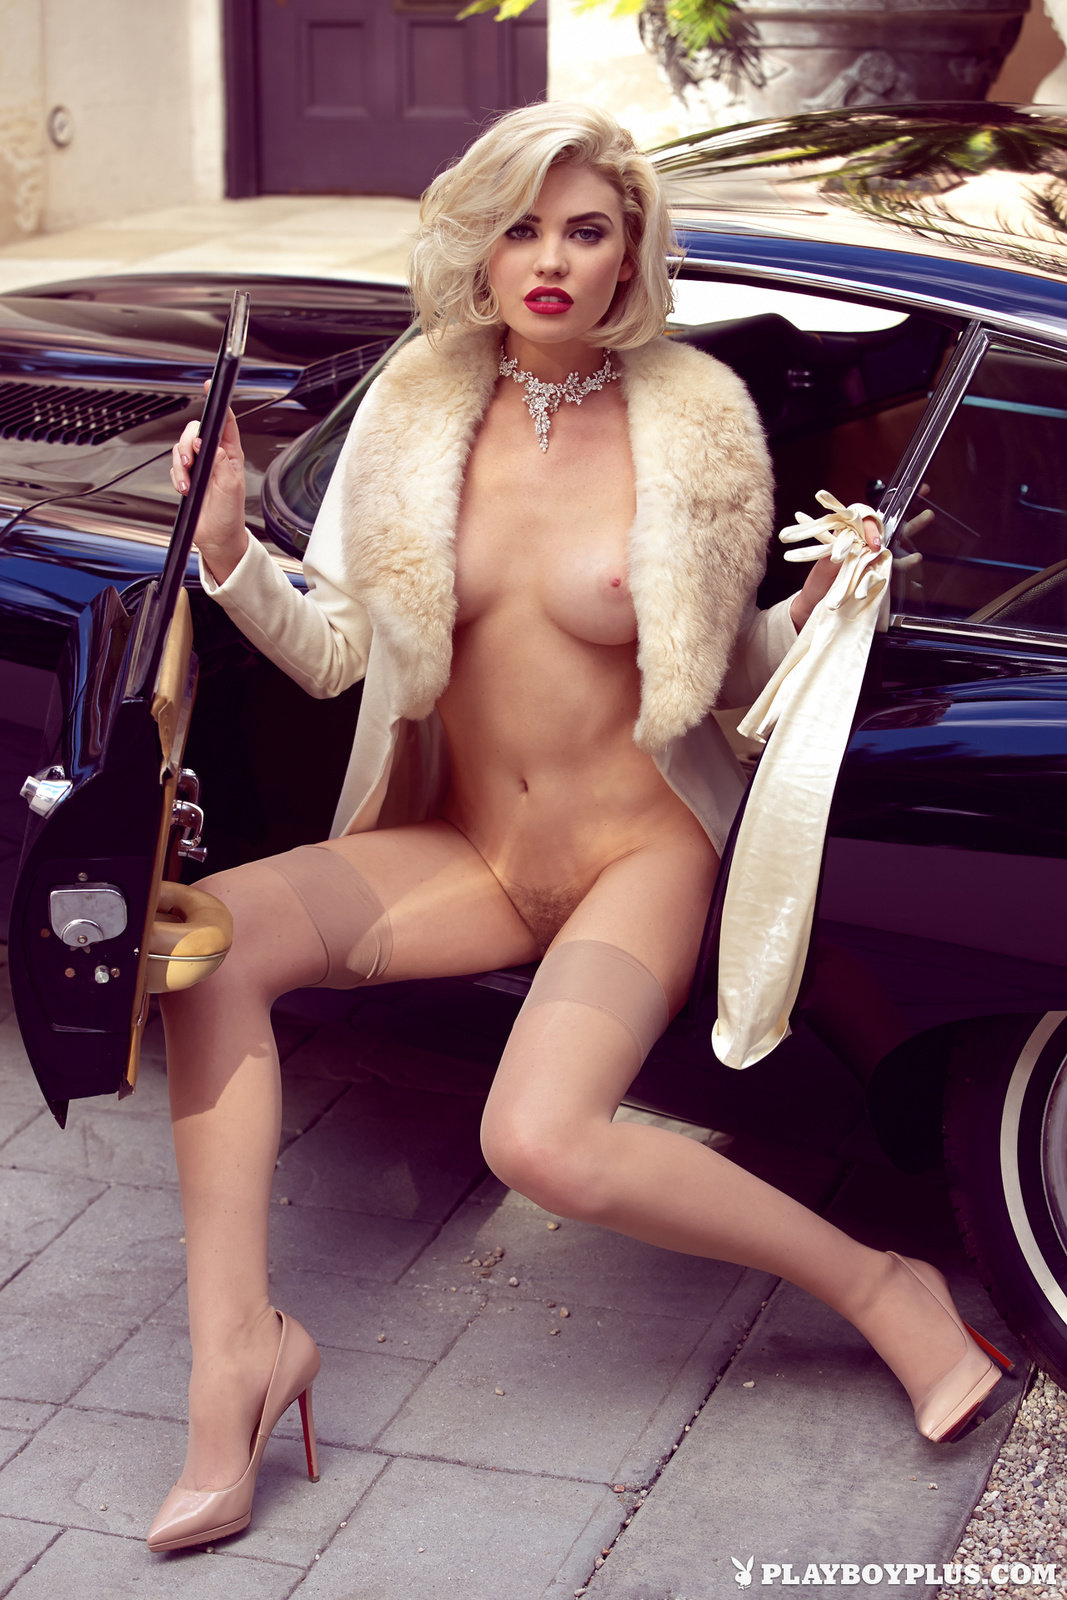 Kayslee Collins In A Classic By Playboy Plus 12 Photos -7530